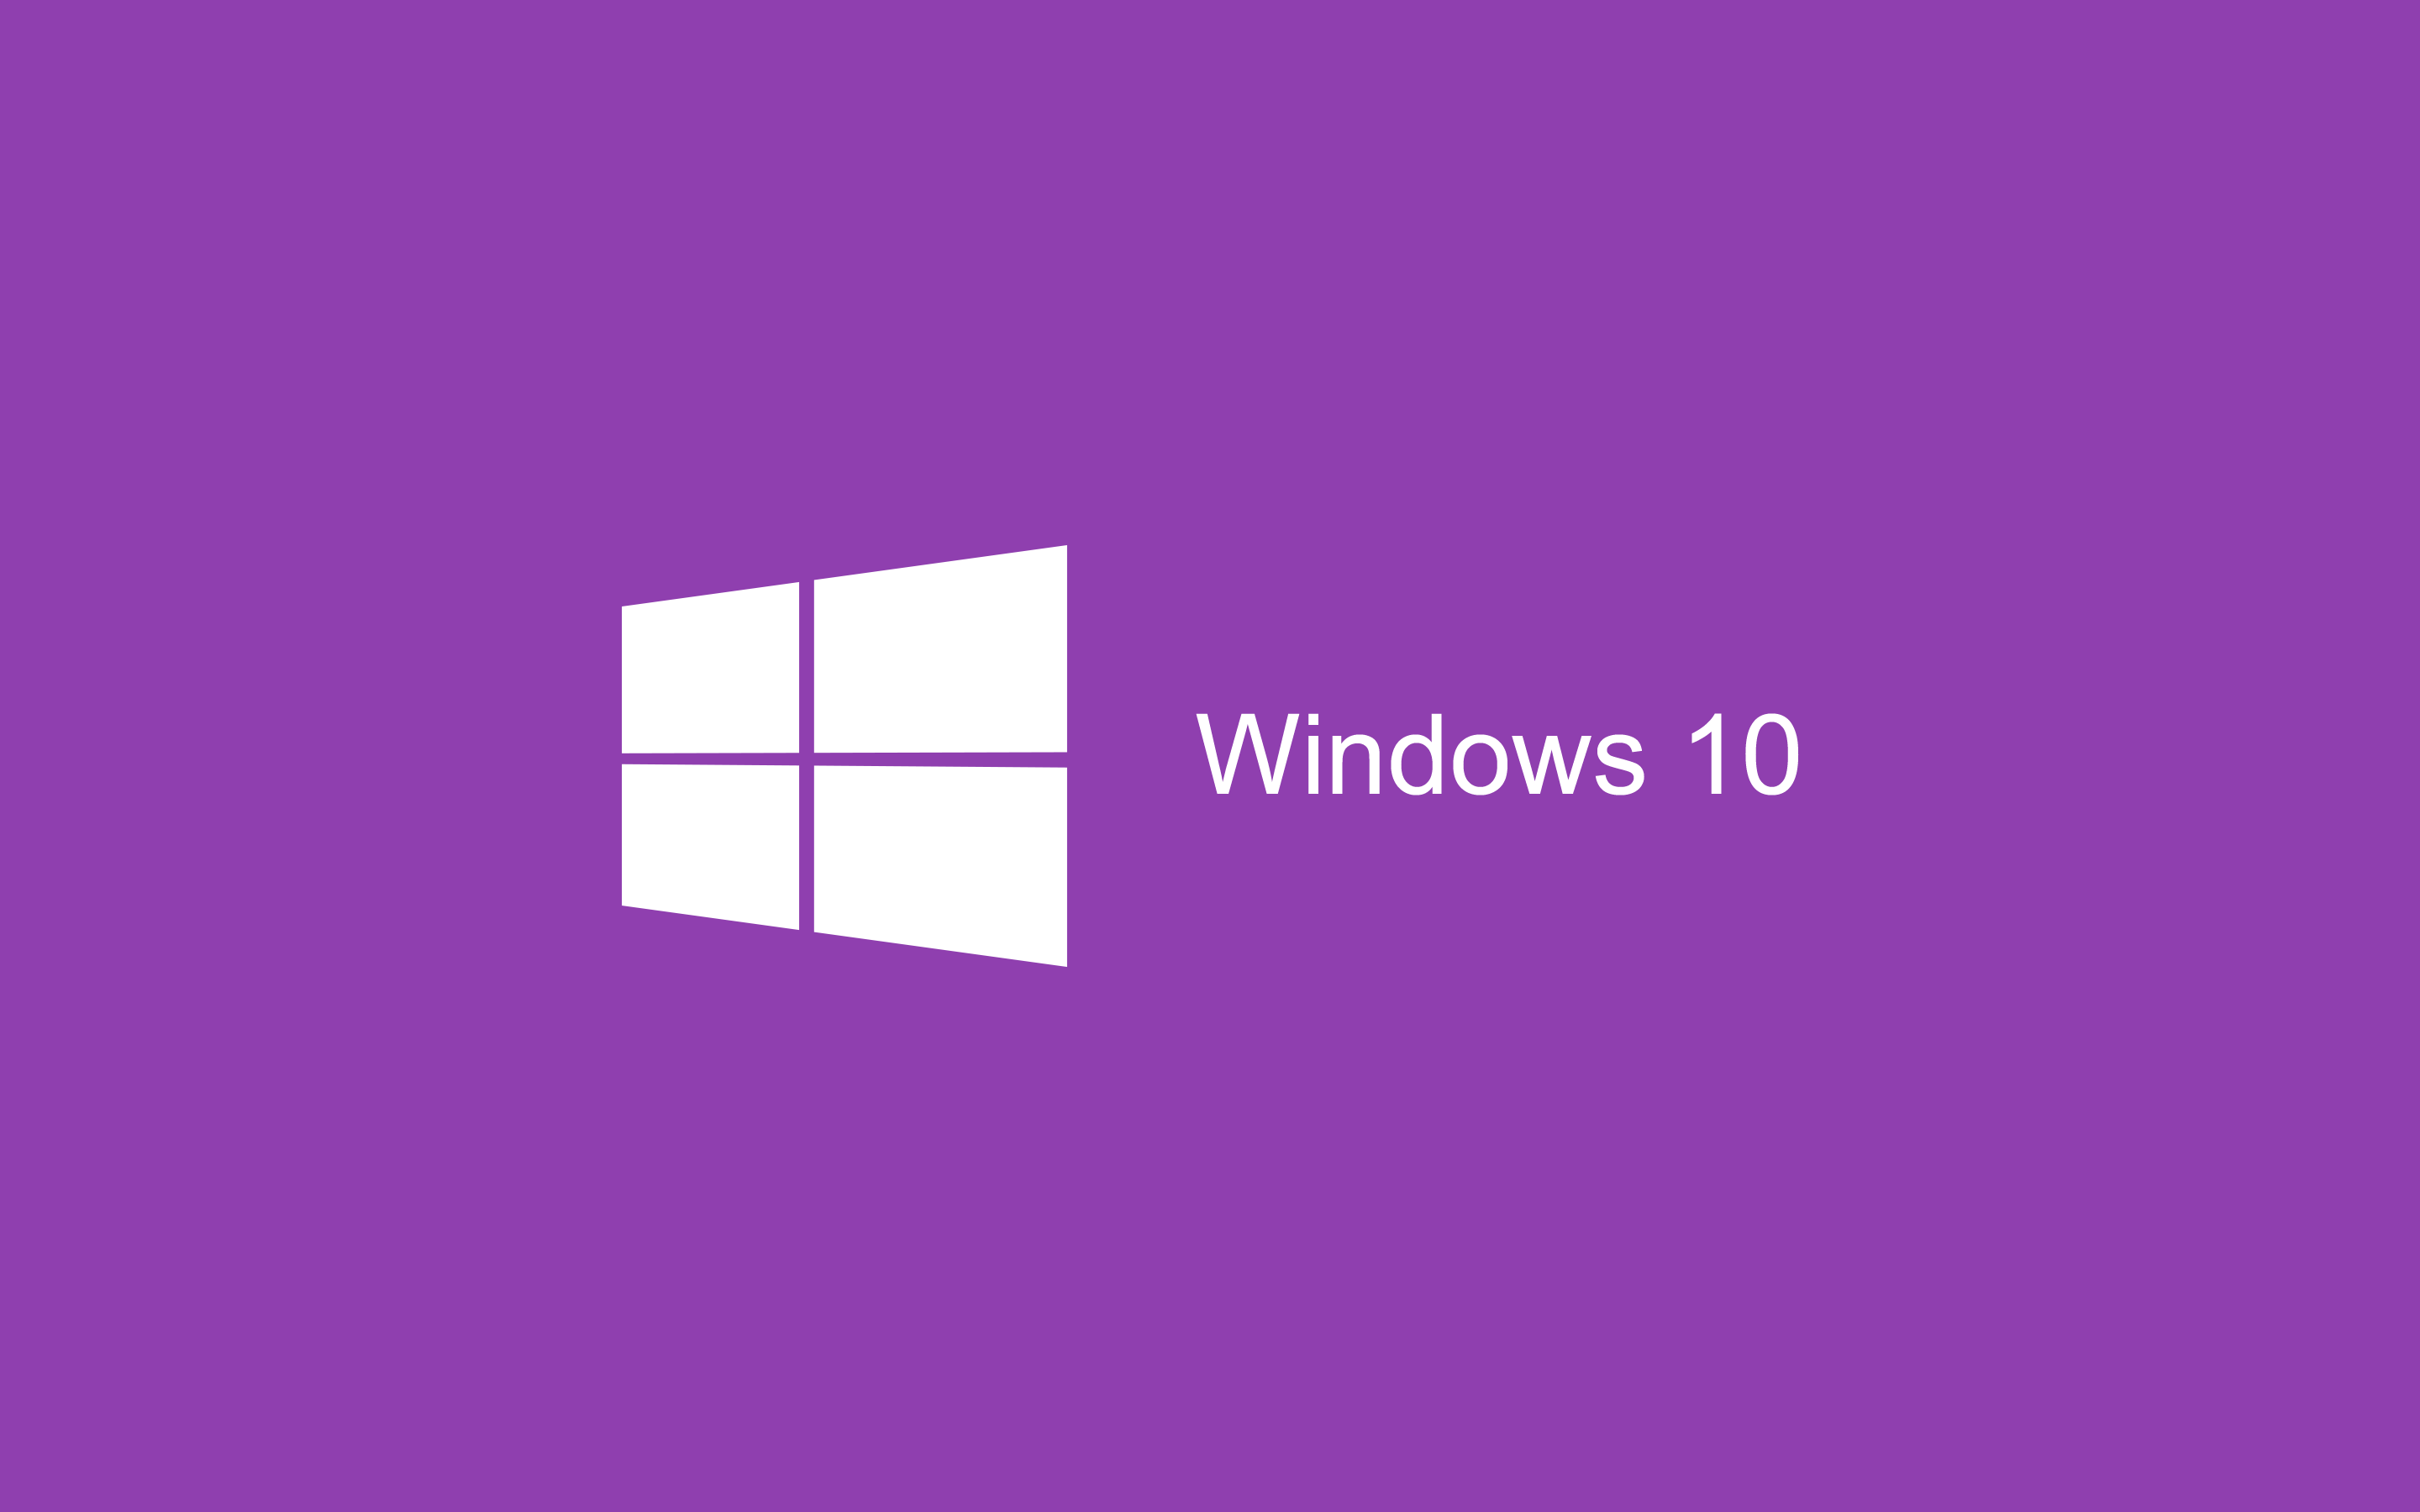 Windows-10-HD-Wallpaper-Plain-13